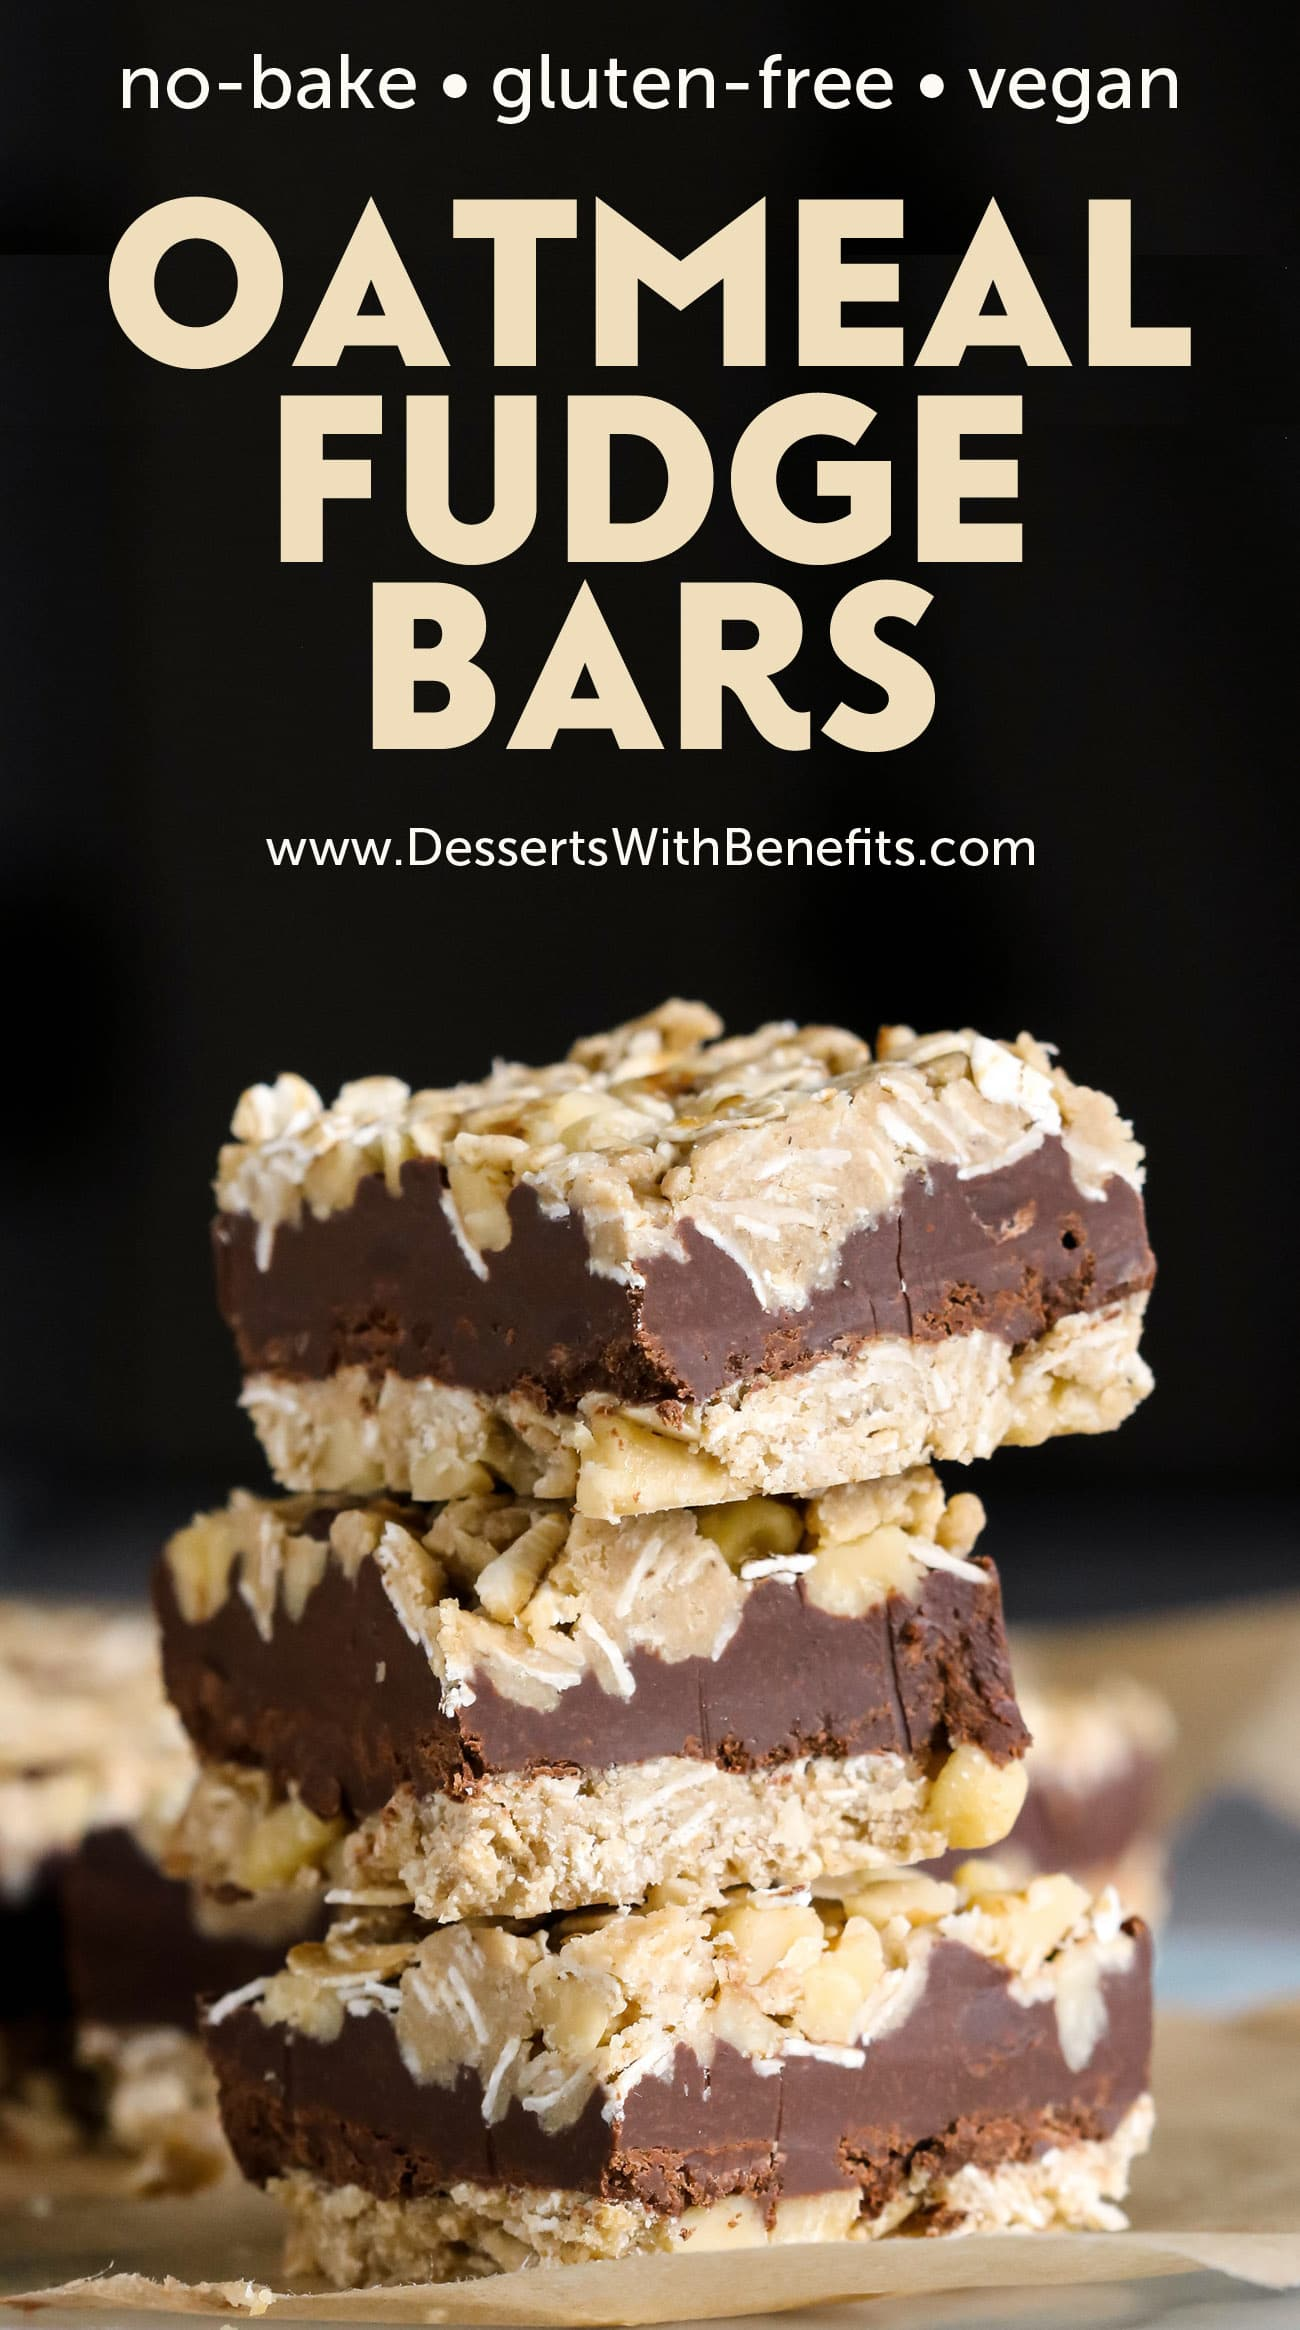 Healthy No-Bake Oatmeal Fudge Bars